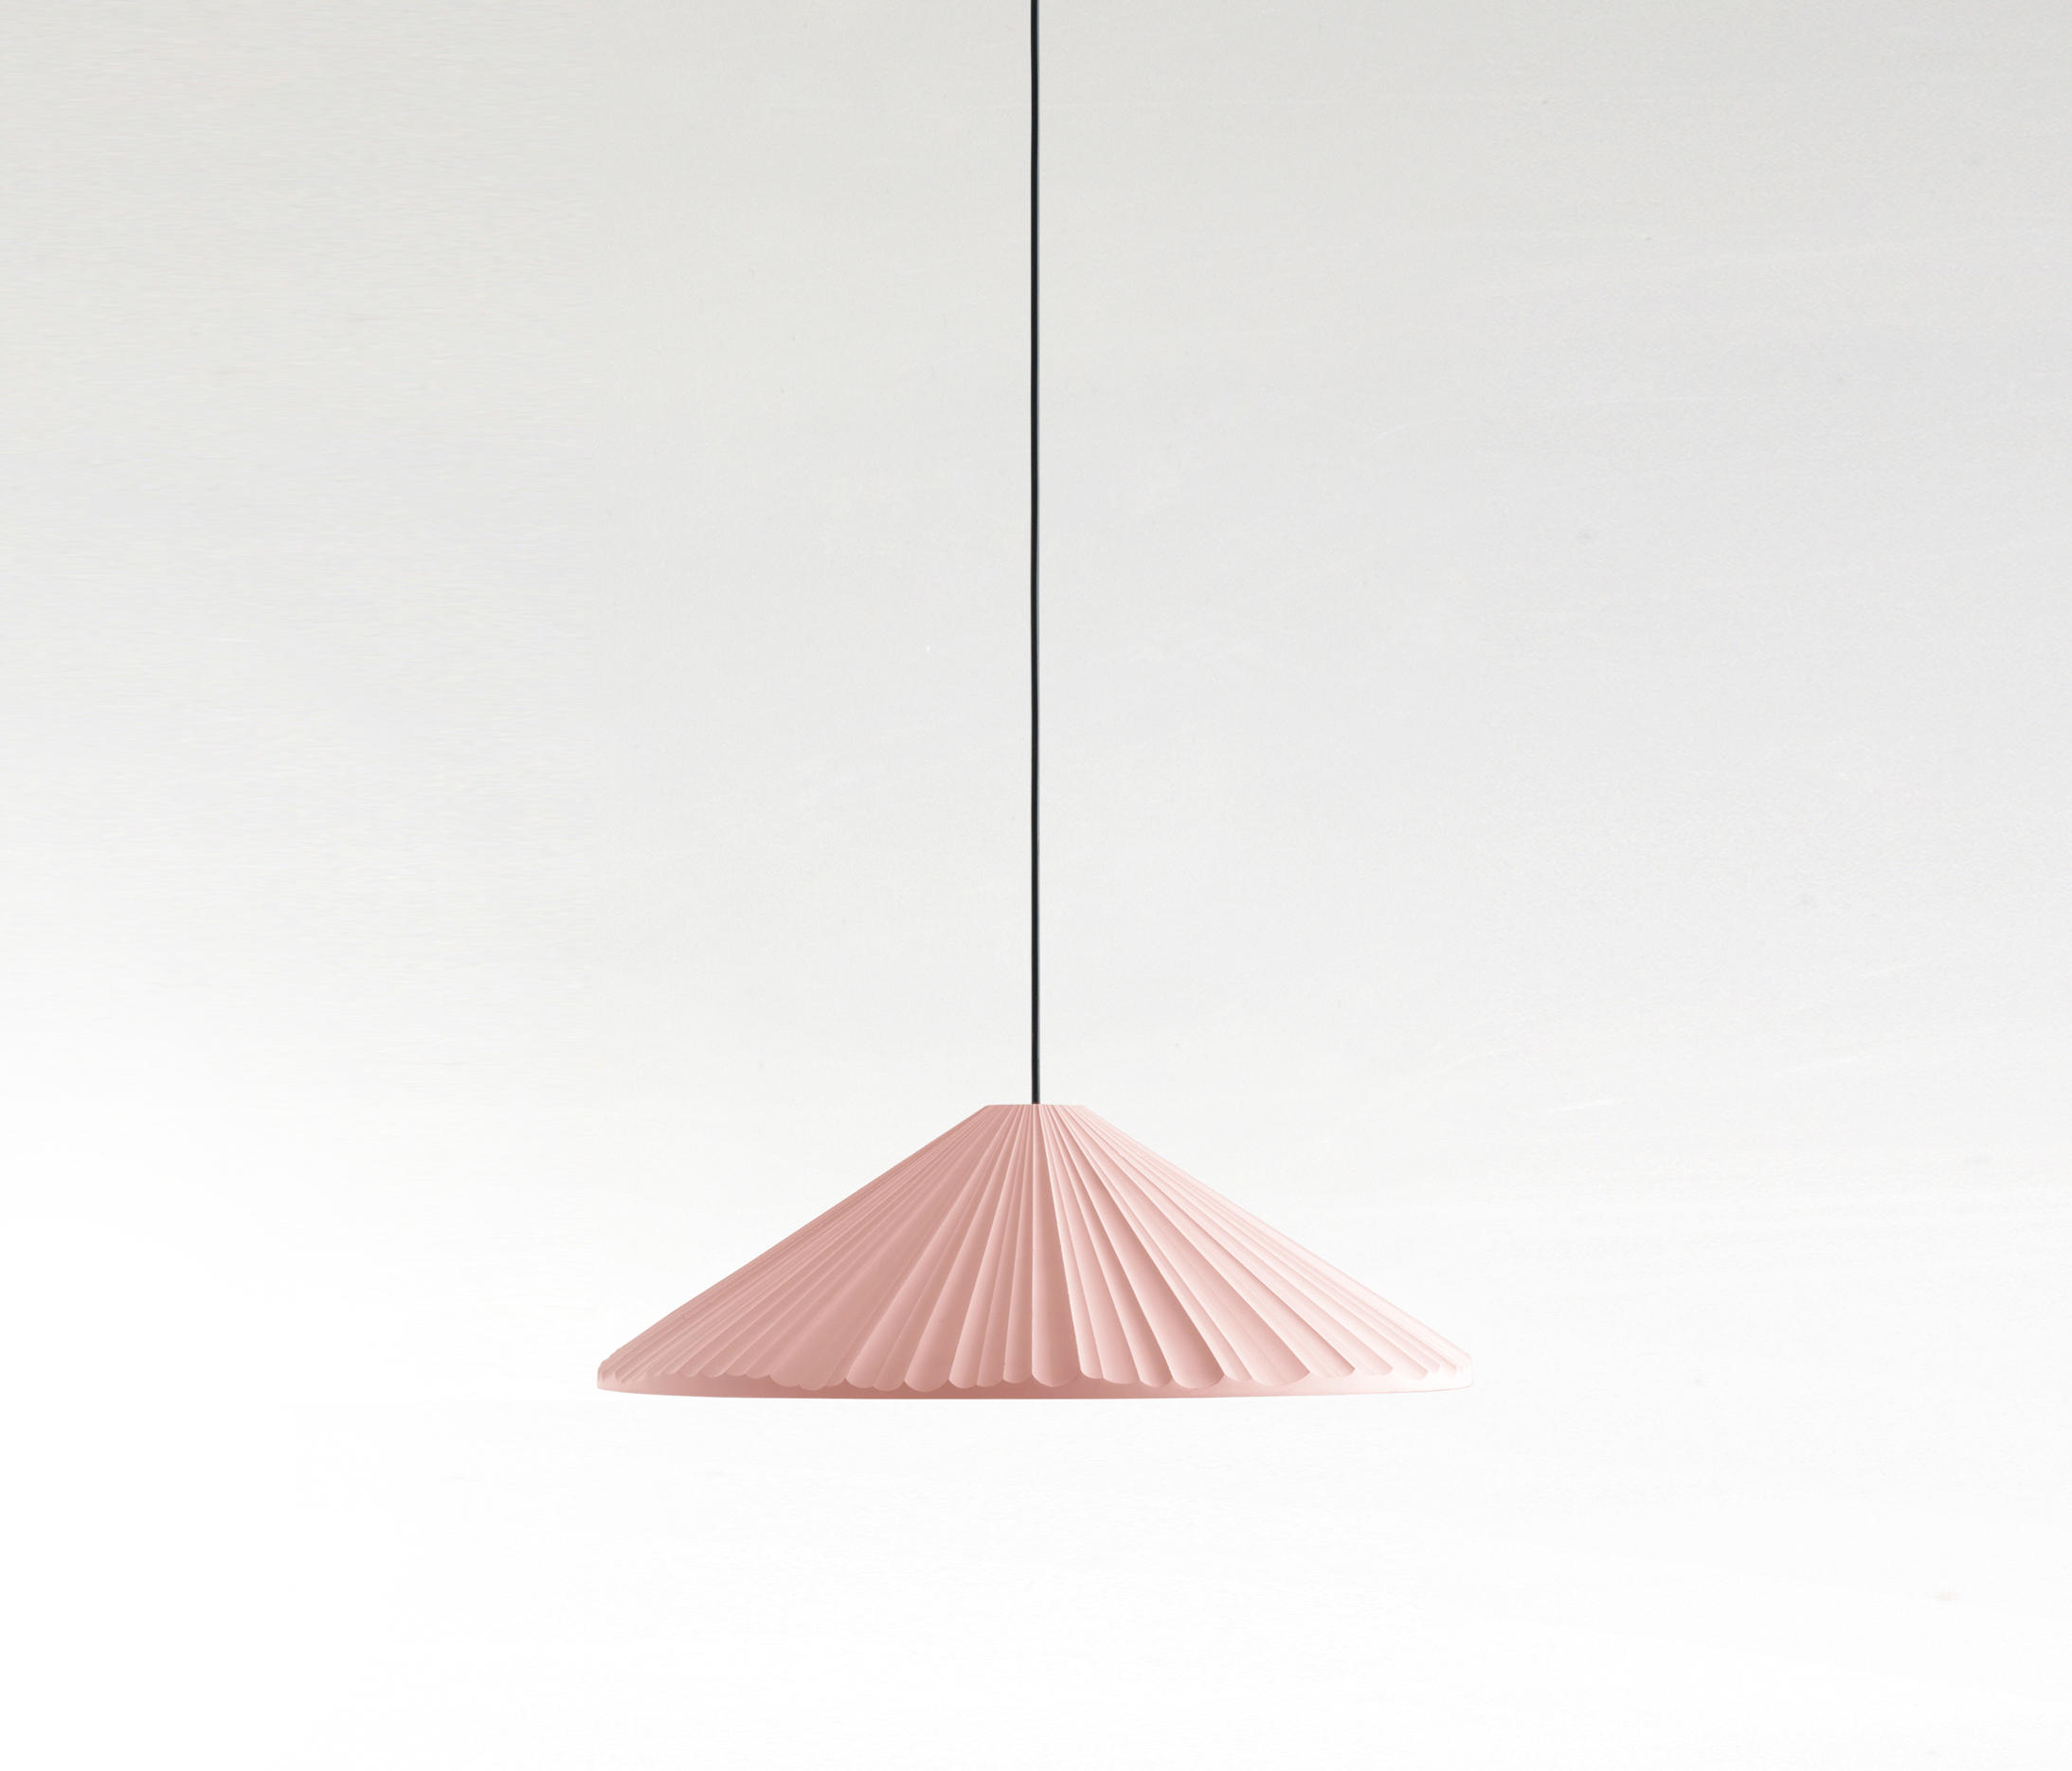 Pu-erh Lamp by Xavier Mañosa for Marset